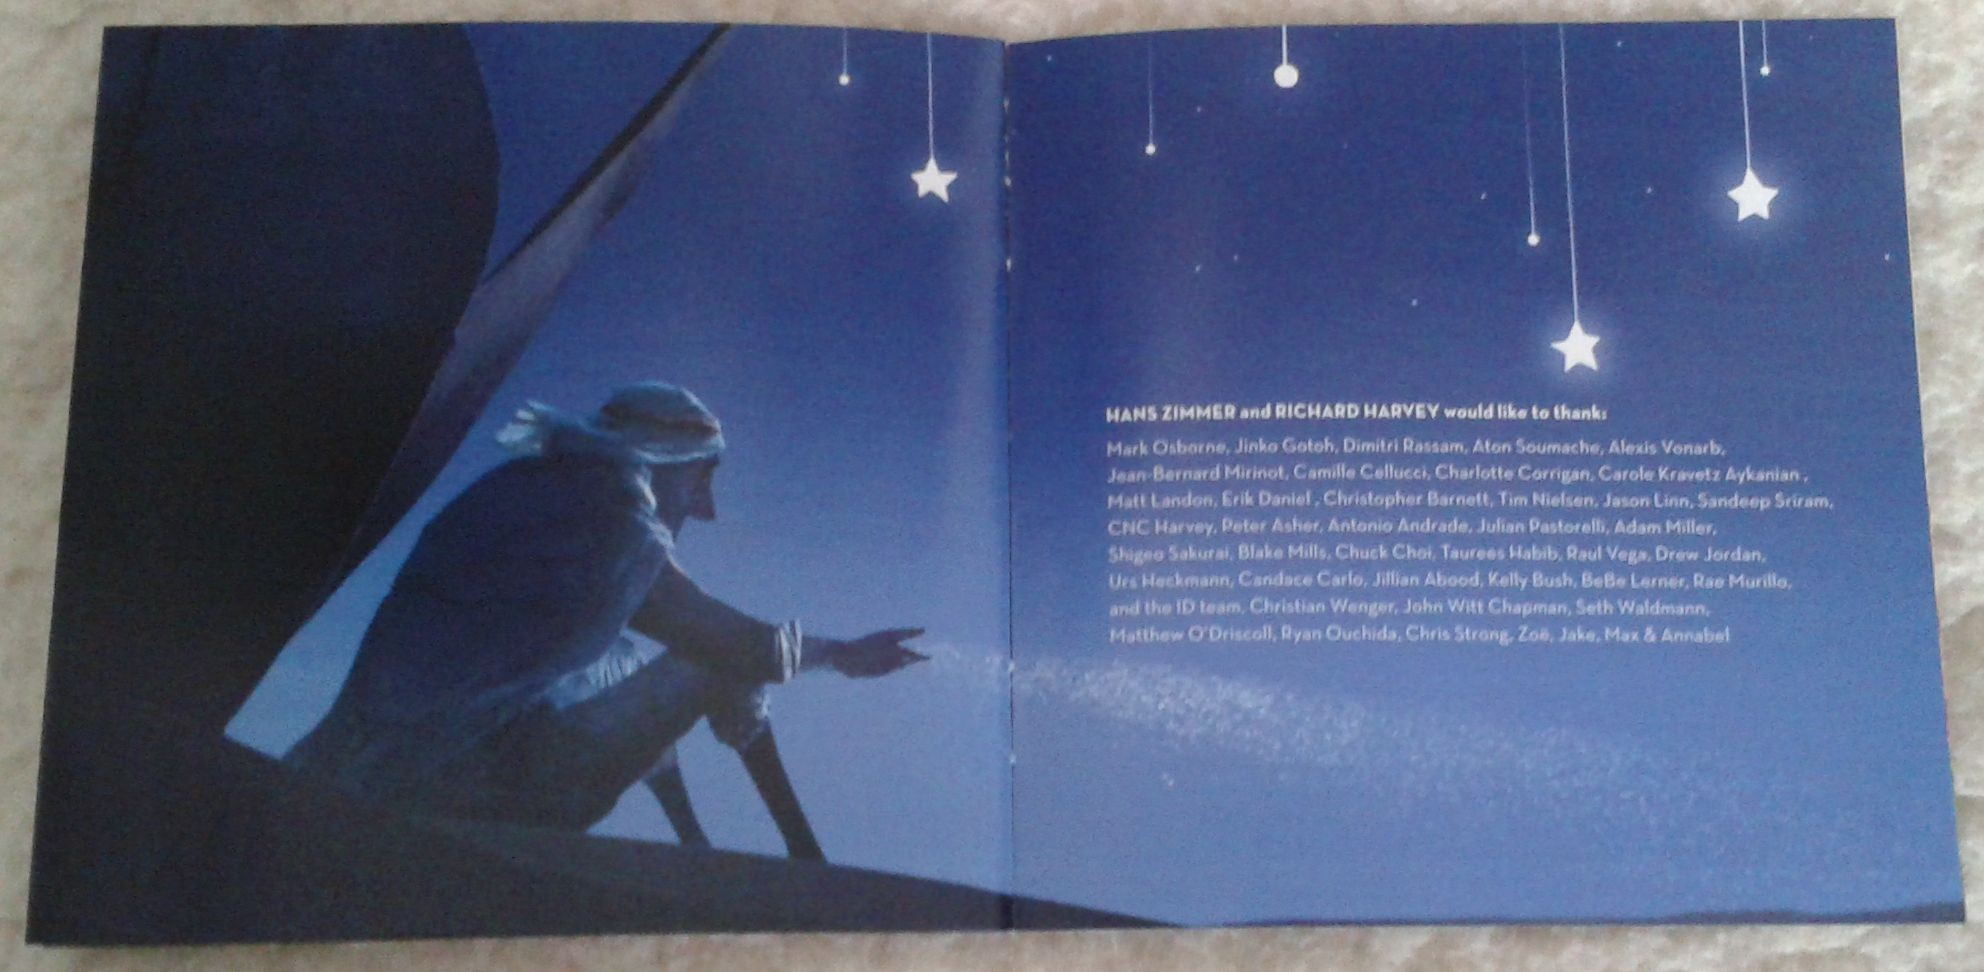 8. The Little Prince booklet 4.jpg